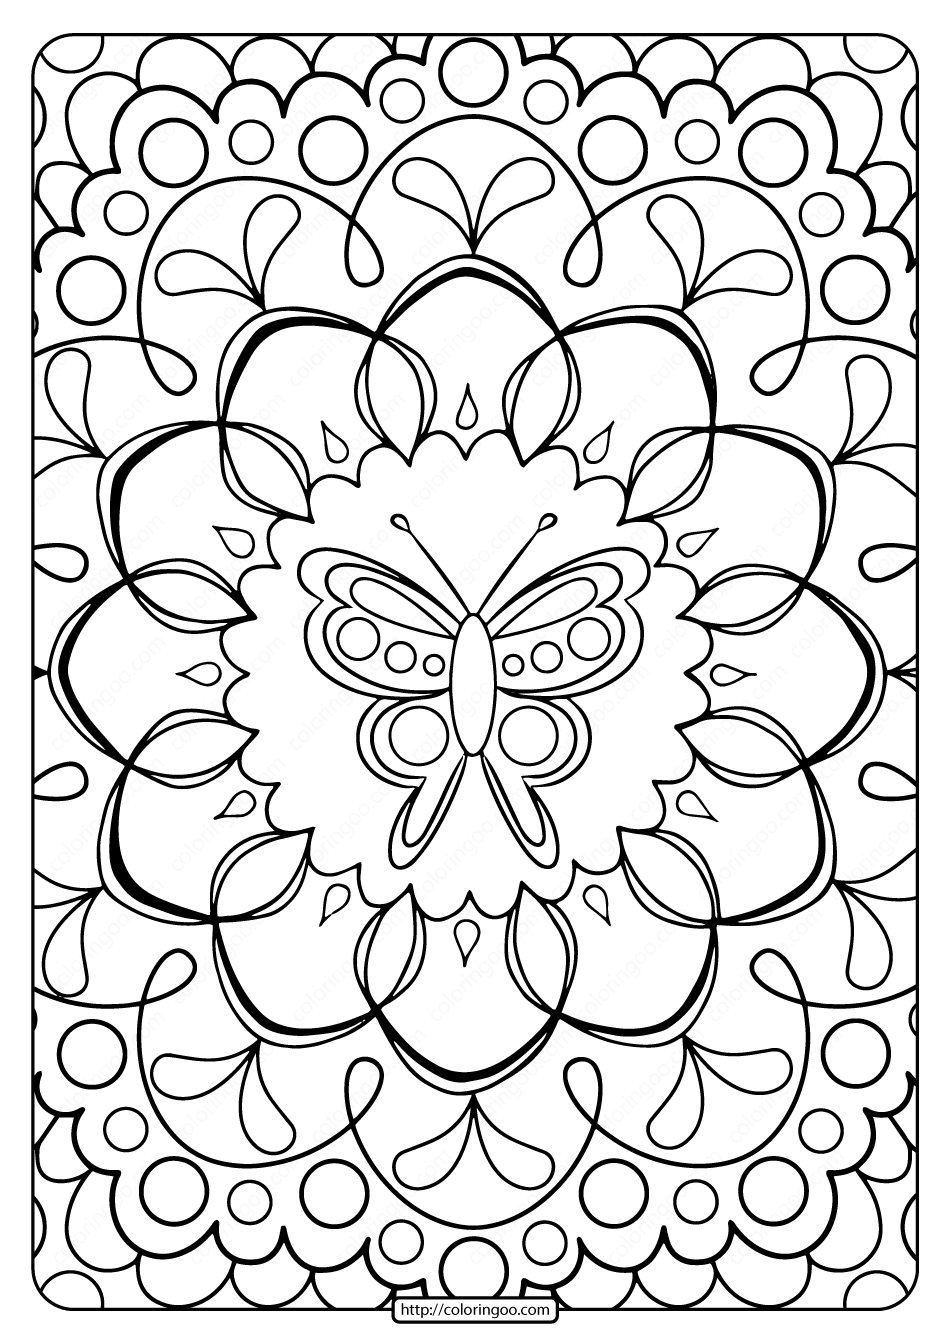 free coloring pages online free printable tangled coloring pages for kids free coloring online pages